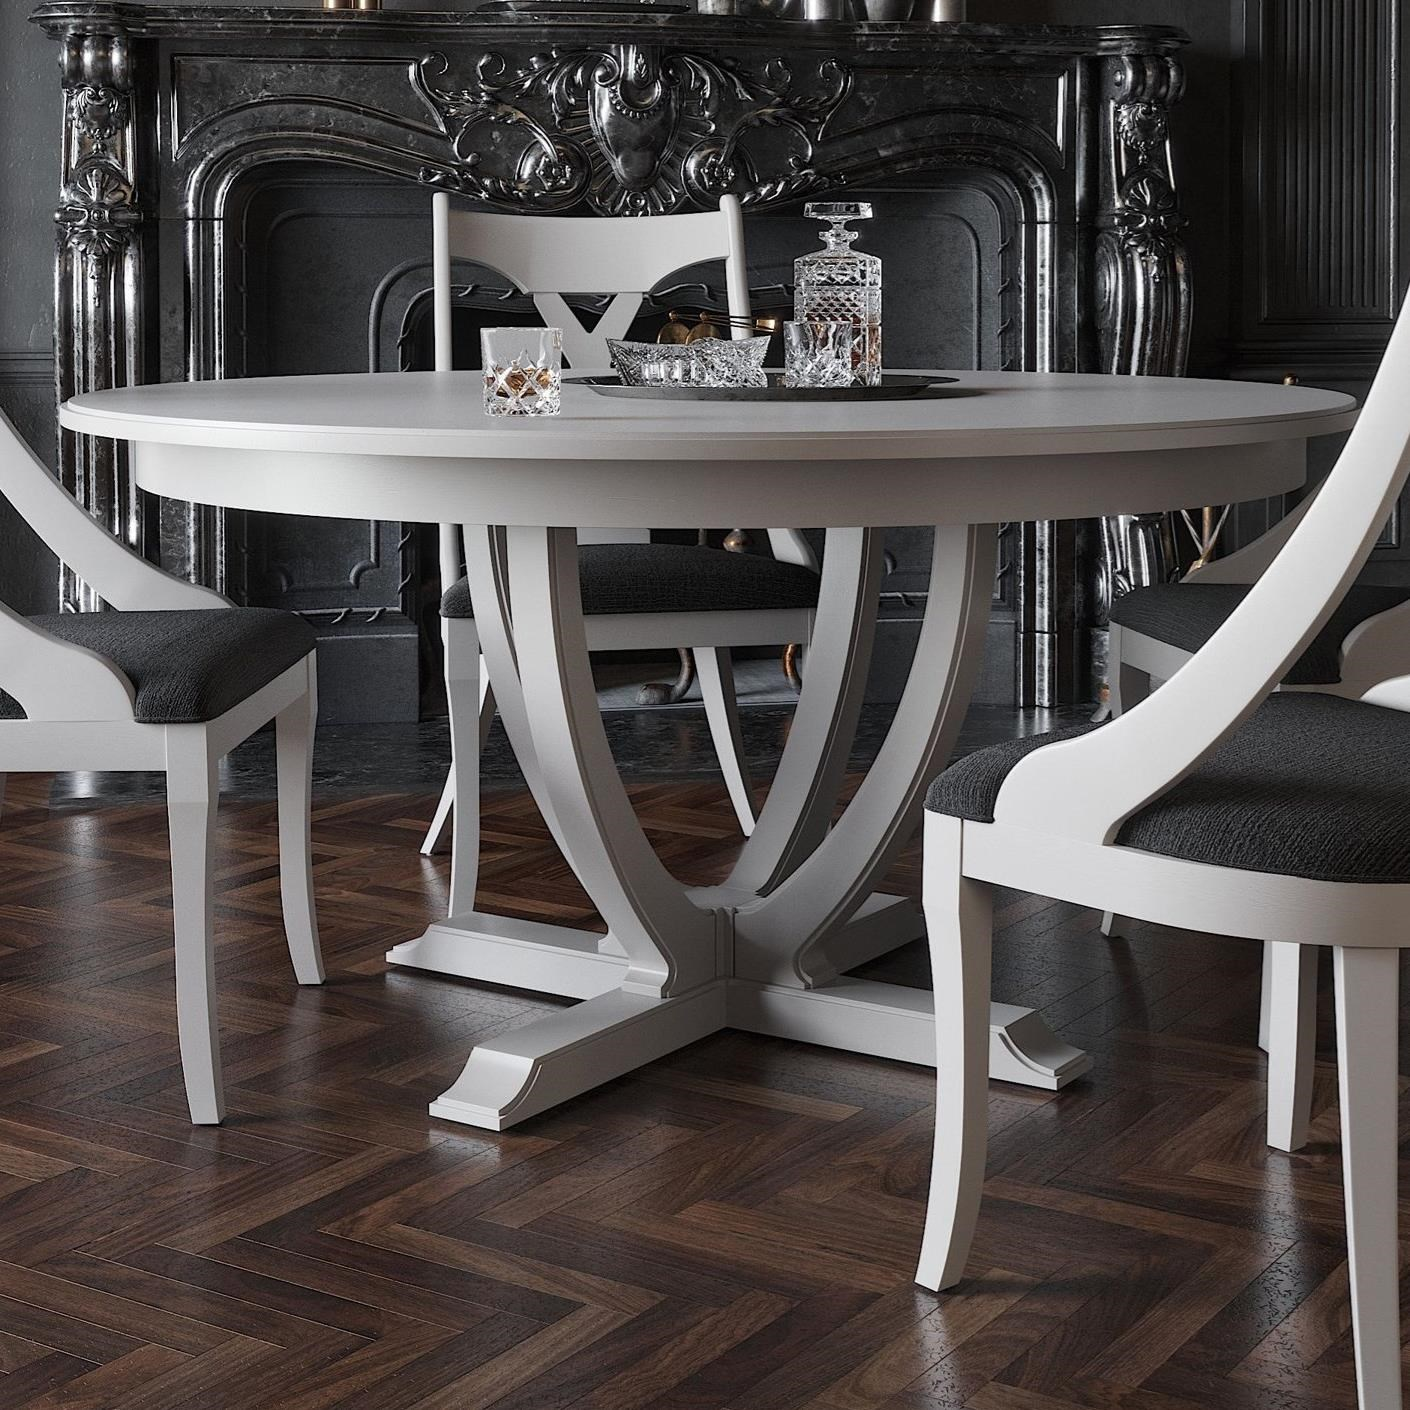 Canadel Classic Customizable Round Dining Table | Becker ...